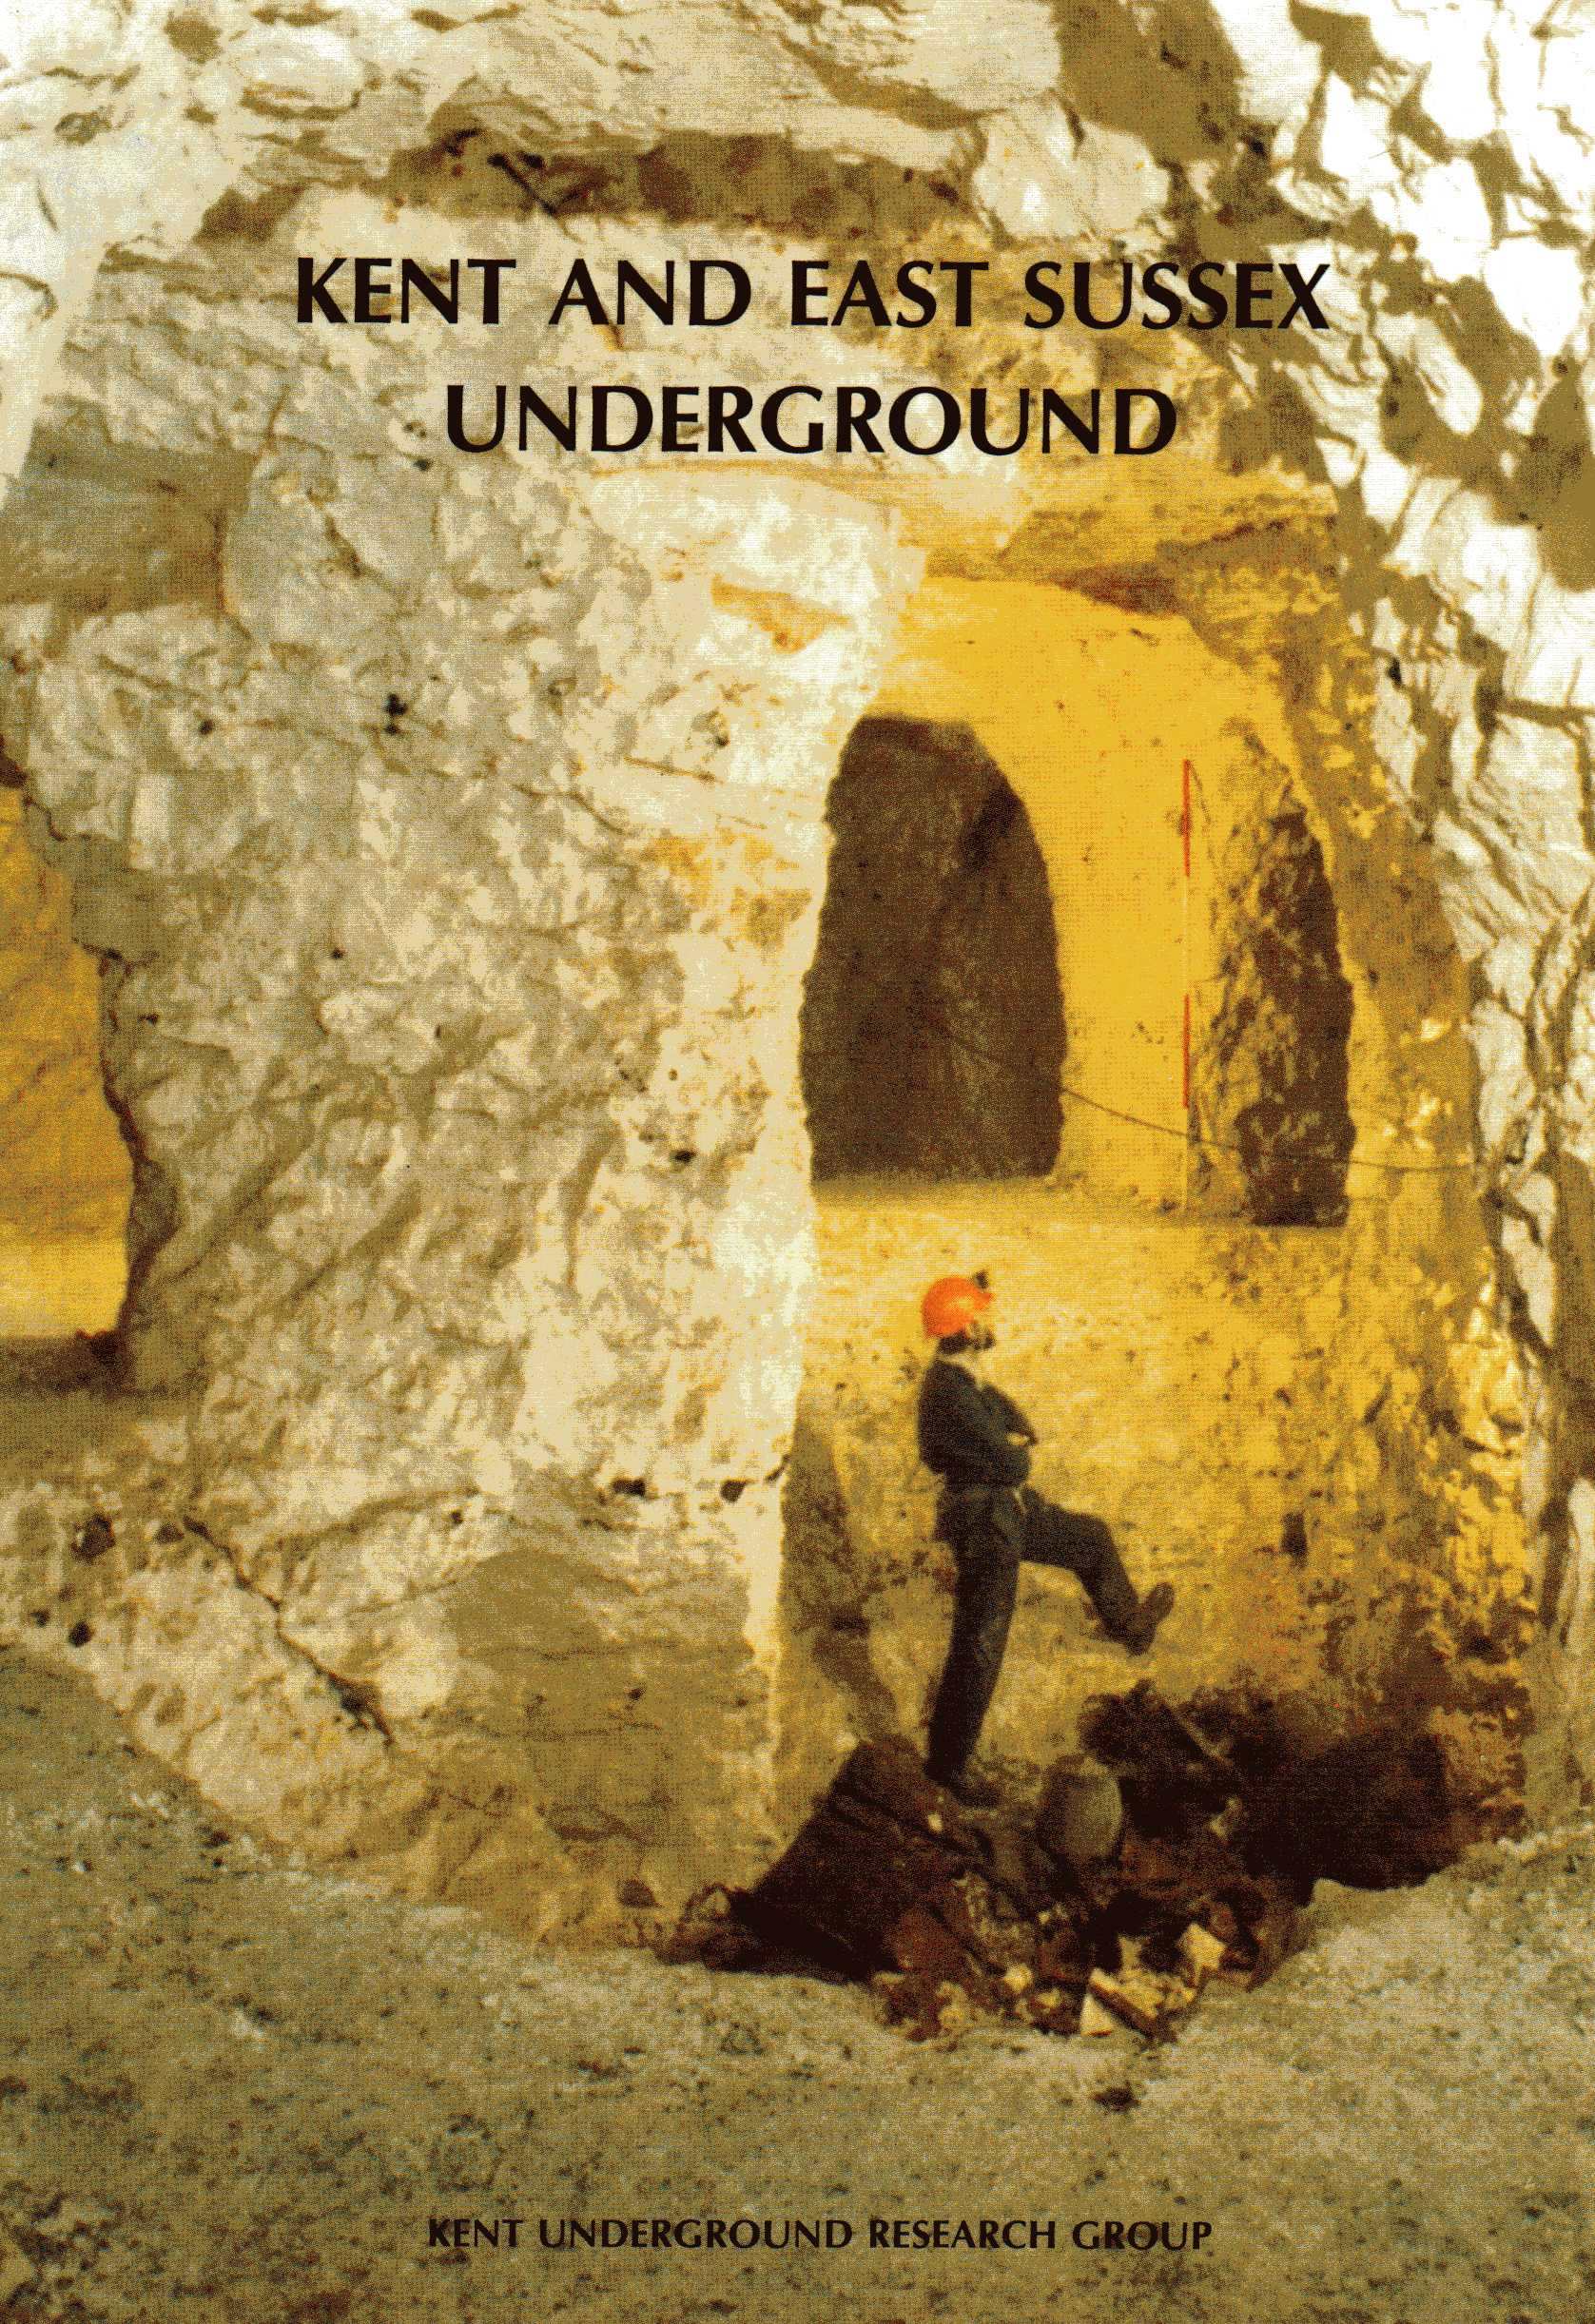 Kent and East Sussex Underground